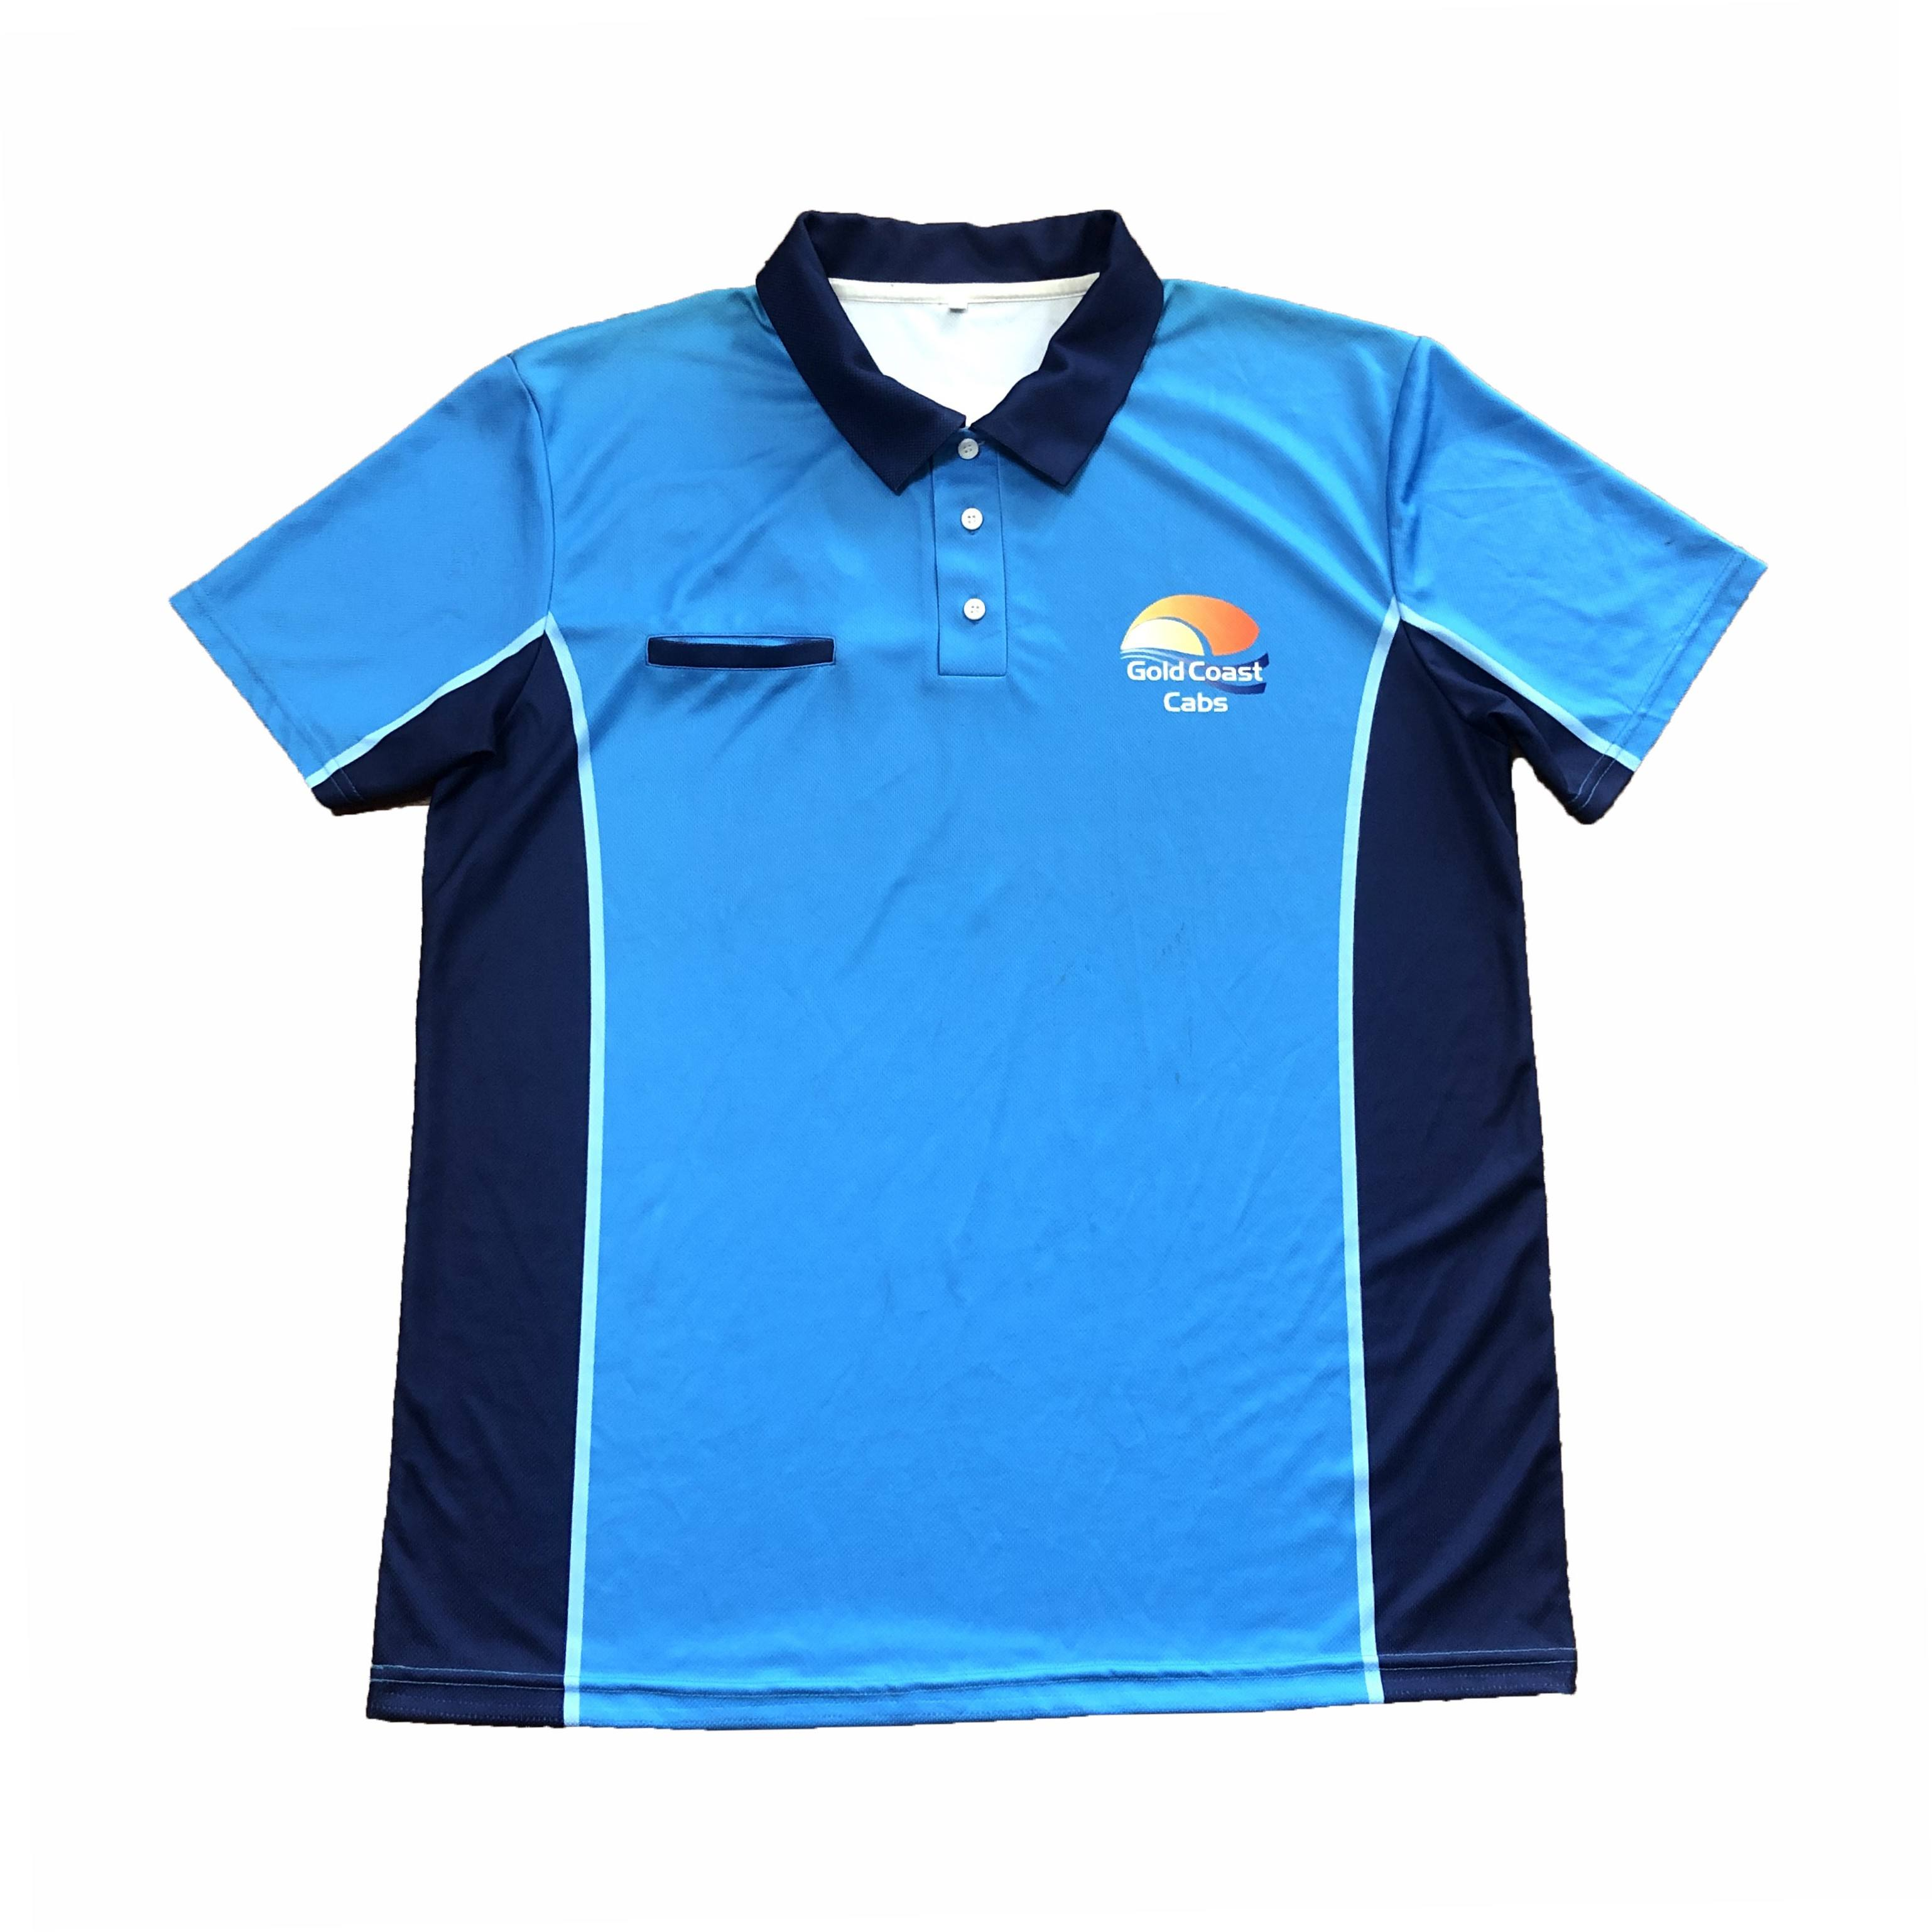 OEM custom short sleeve polo shirt high quality work wear uniform for unisex 100% polyester advertisement shirt for business